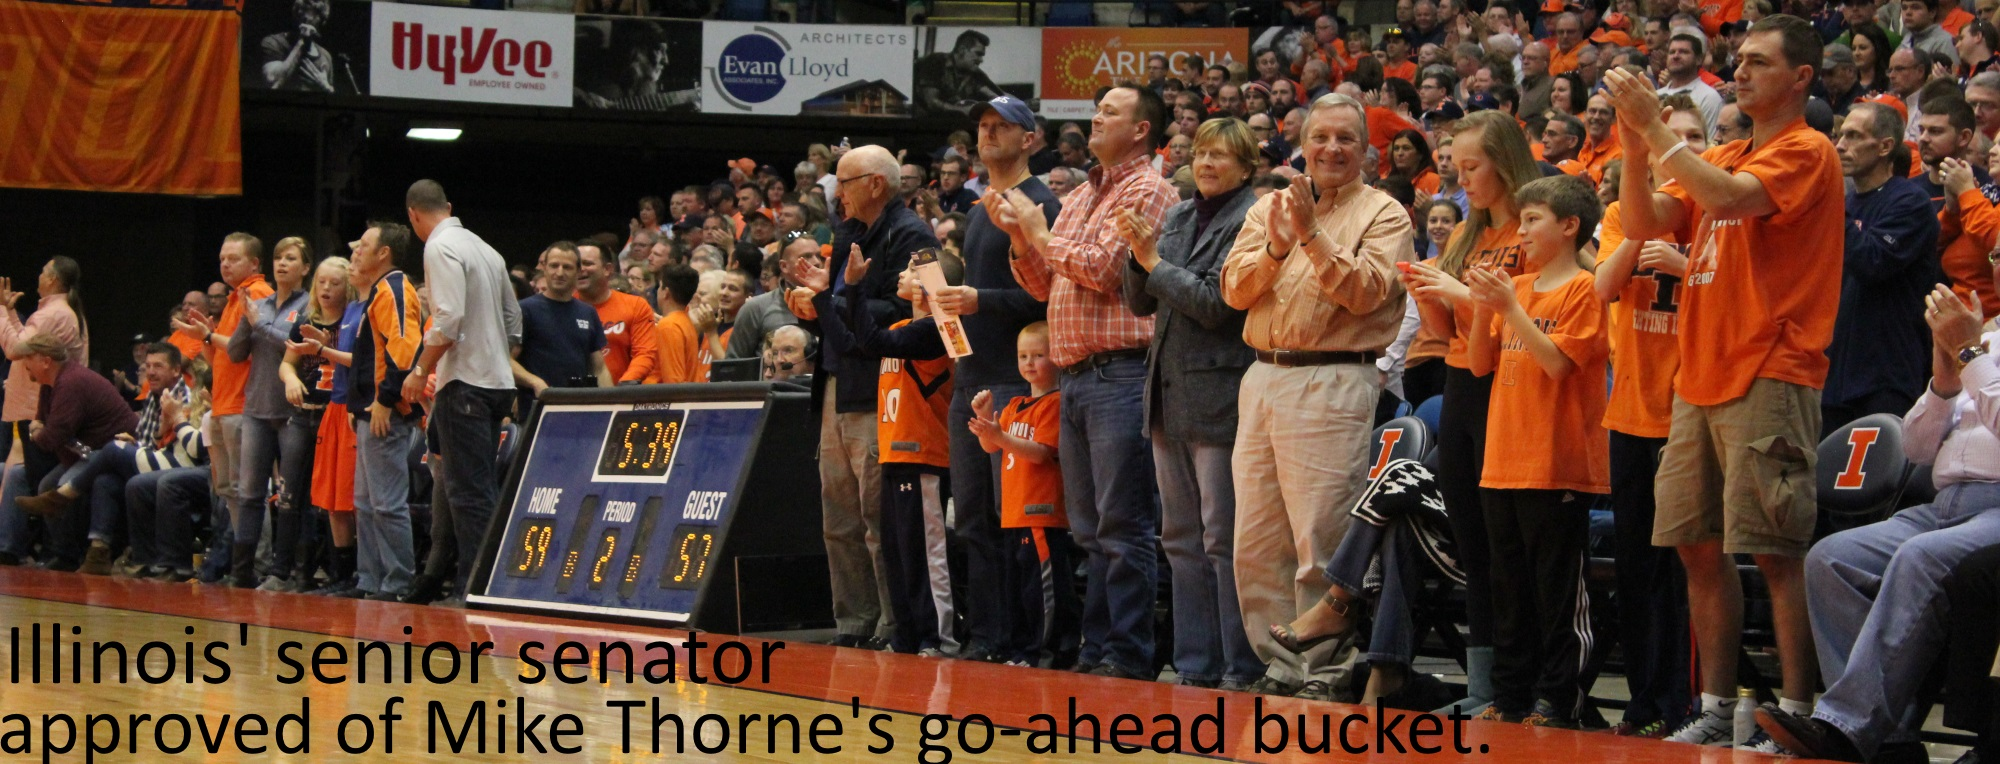 Dick Durbin applauds Illini